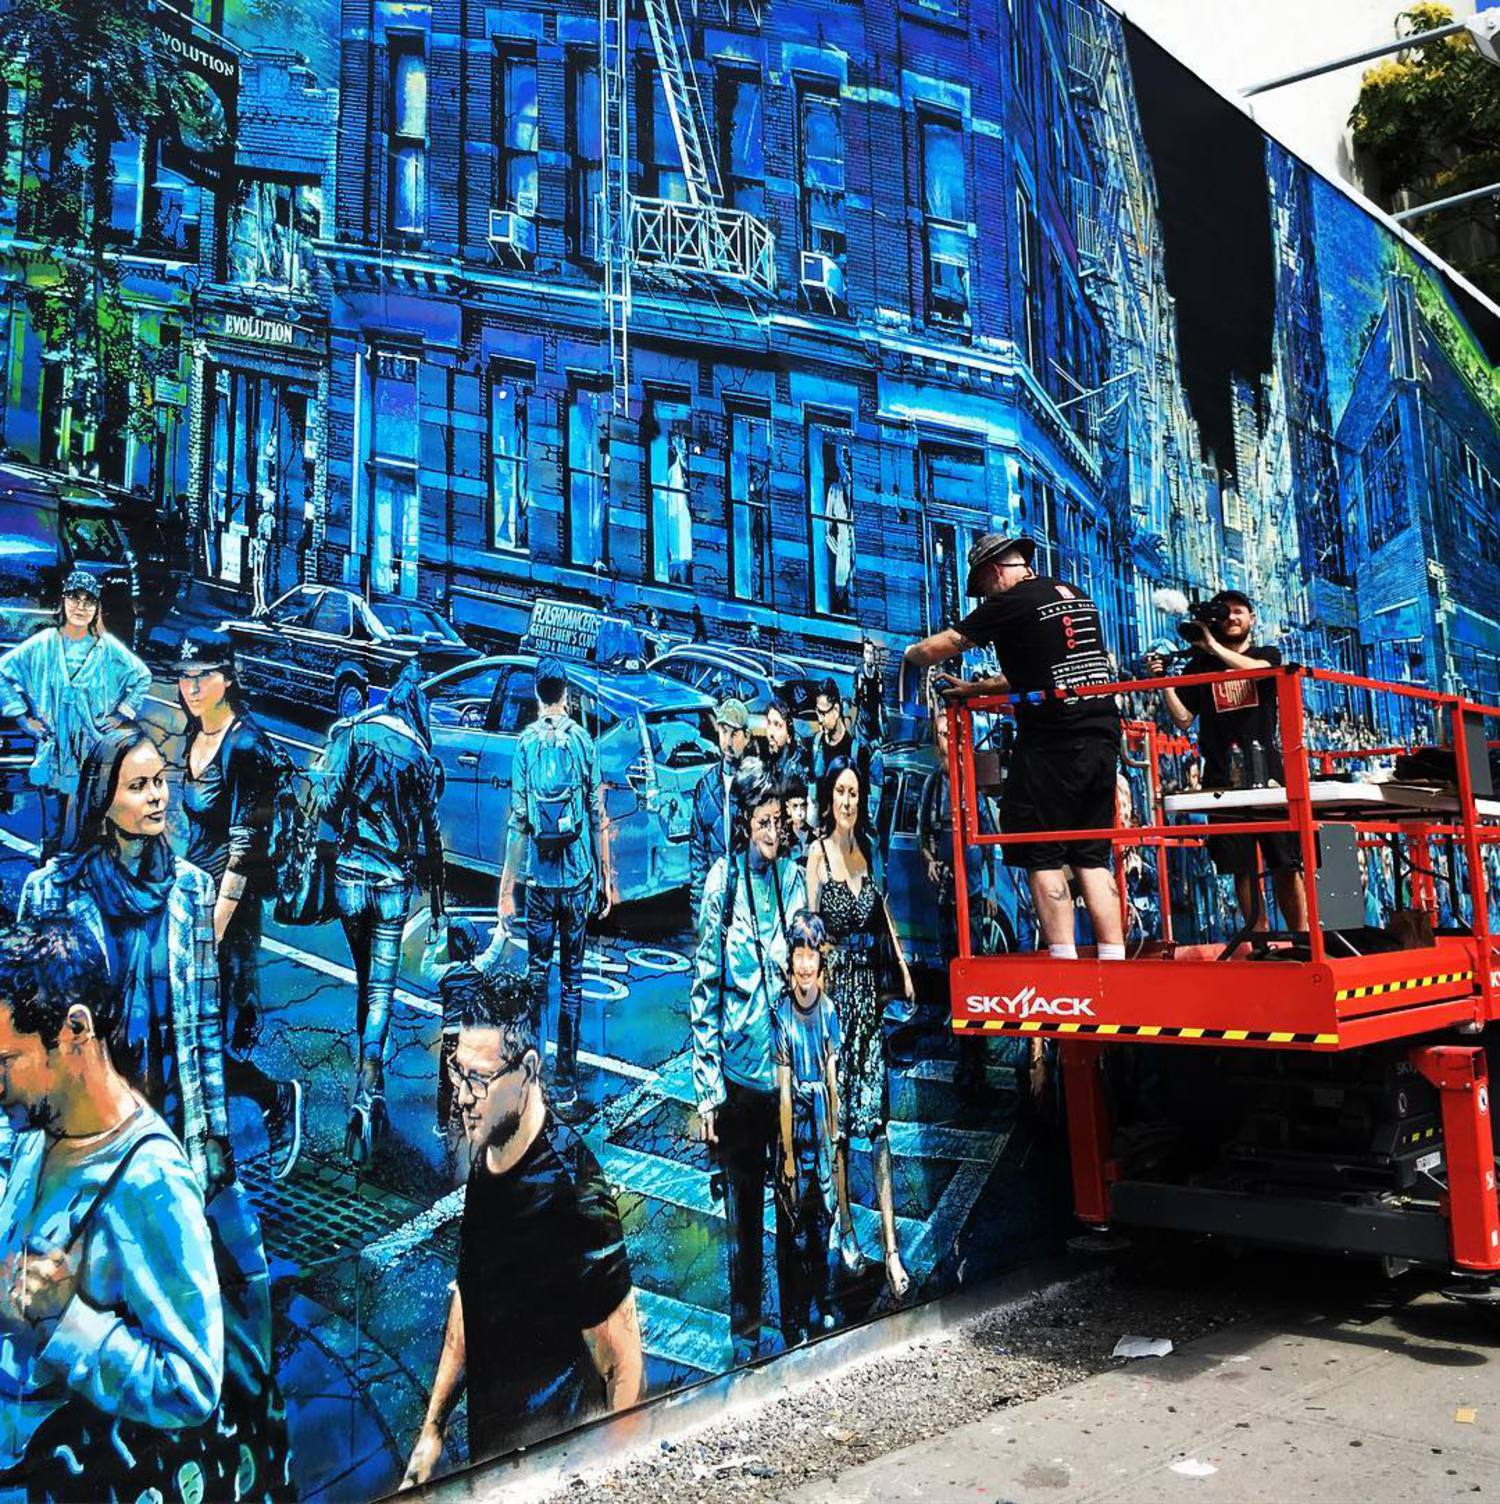 This vibrant visual story on the #BoweryWall by the talented @loganhicksny stopped me in my tracks today. We are each the sum of our experiences, and at the center of many of our most meaningful ones are the people who have taken steps with us on our journey. In this oft overloaded, always-on city, artists like Logan remind us to cherish and take time for walks with those that matter. #loganhicksbowerywall #loganhicksbowery #nyc #art